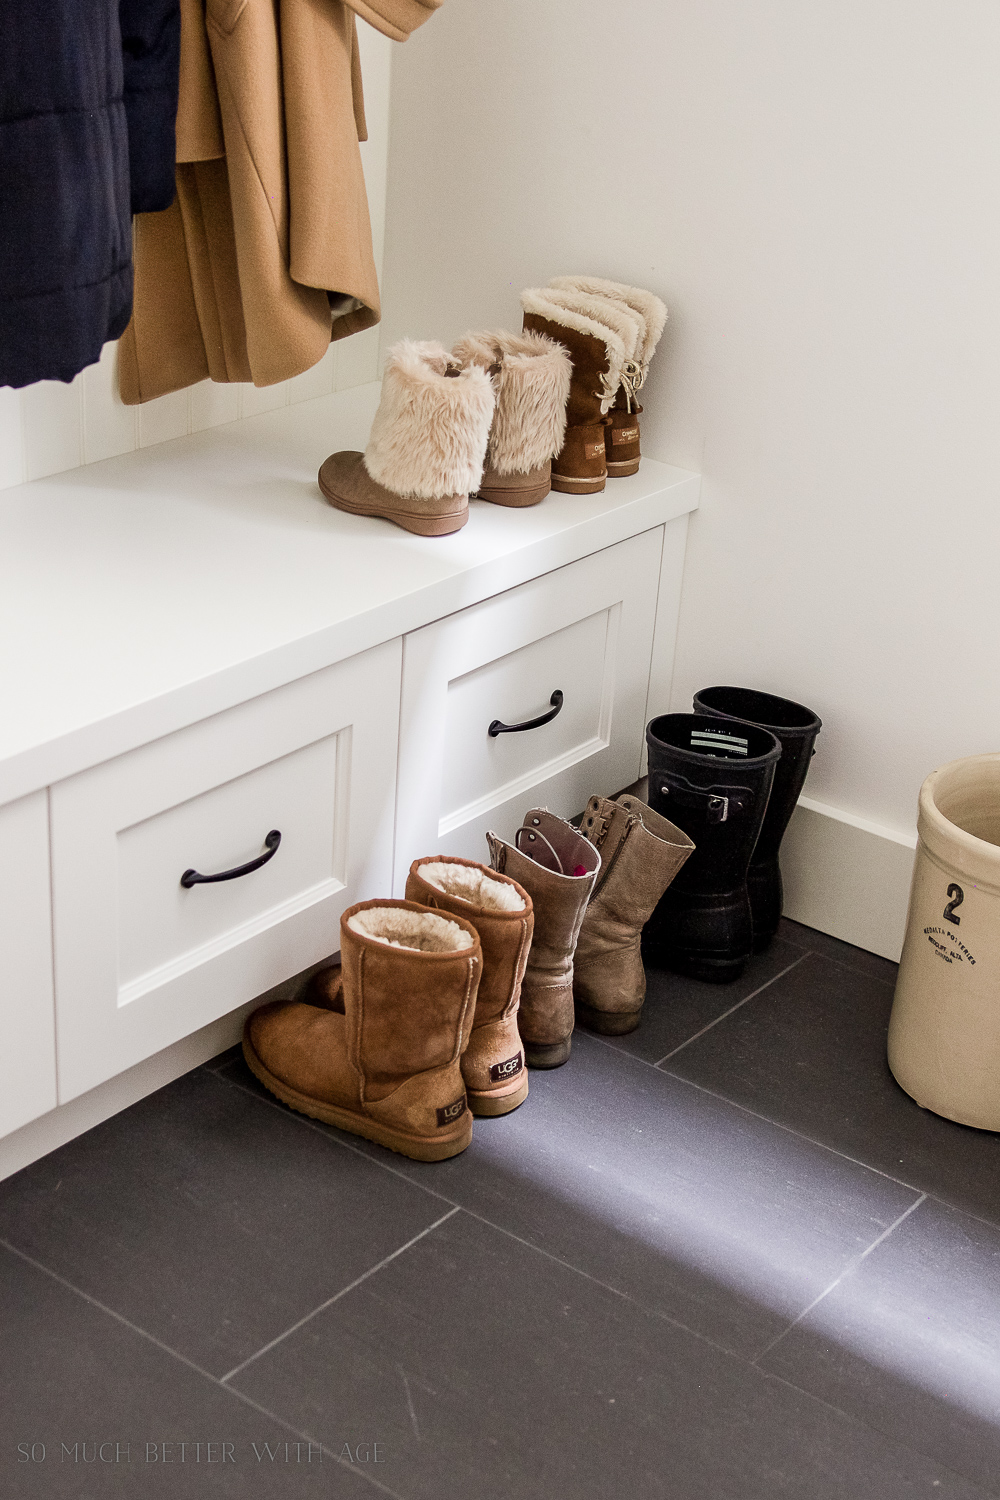 12 Essentials When Renovating a Tiny Mudroom While Keeping it Pretty